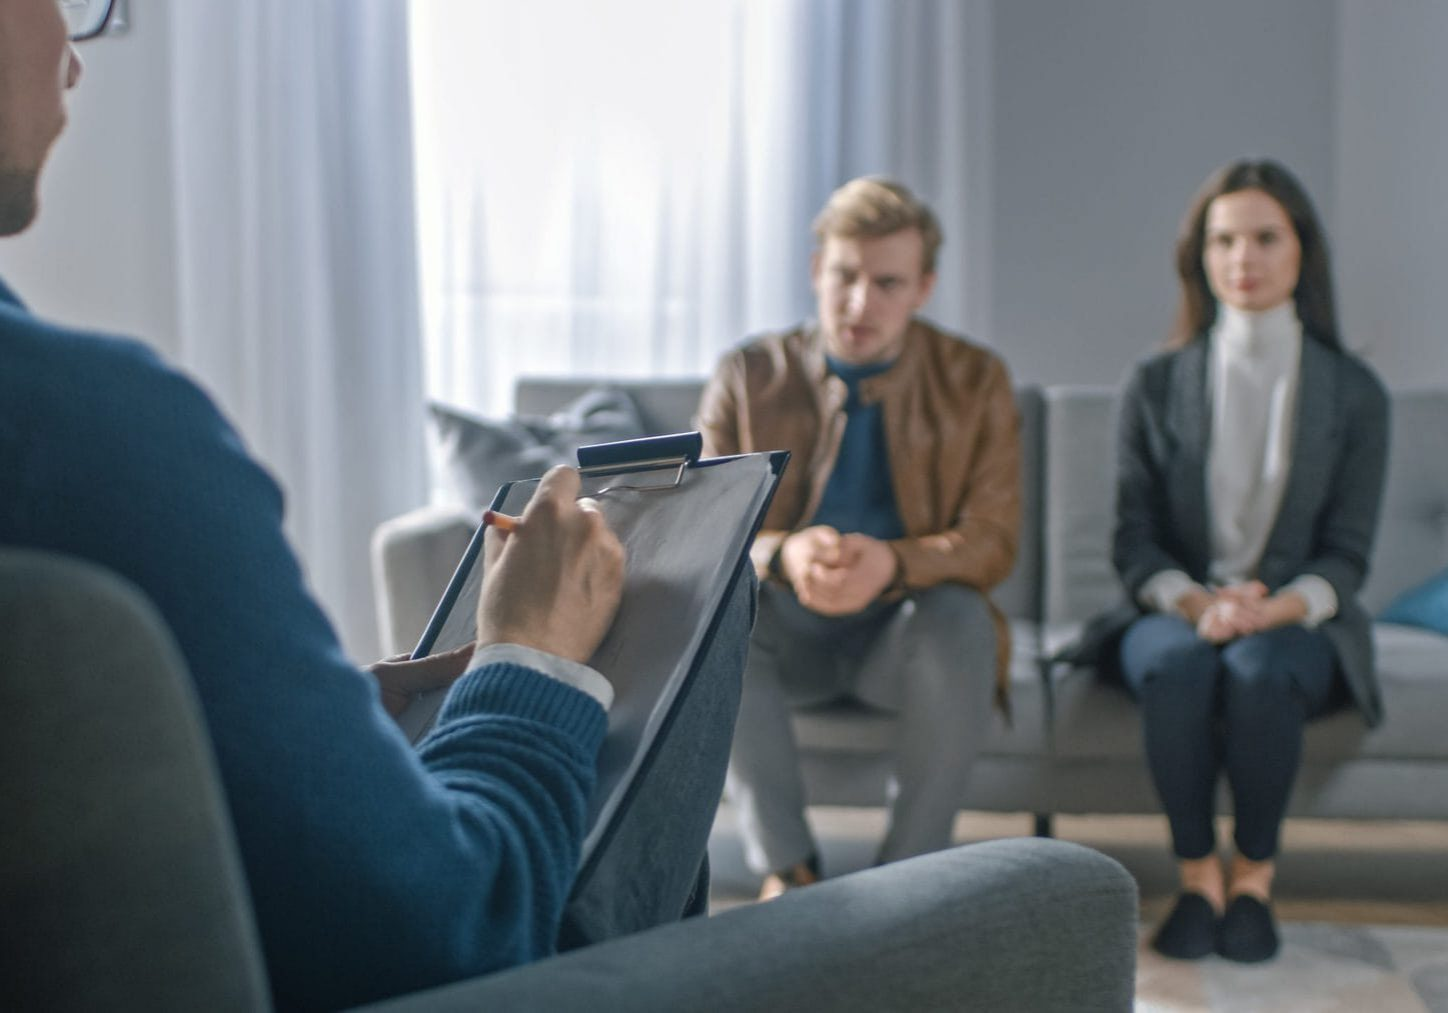 Couple on a Counseling Session with Psychotherapist. Foreground Focus on Back of the Therapist Taking Notes and Talking: People Sitting on the Analyst Couch, Discussing Psychological Problems